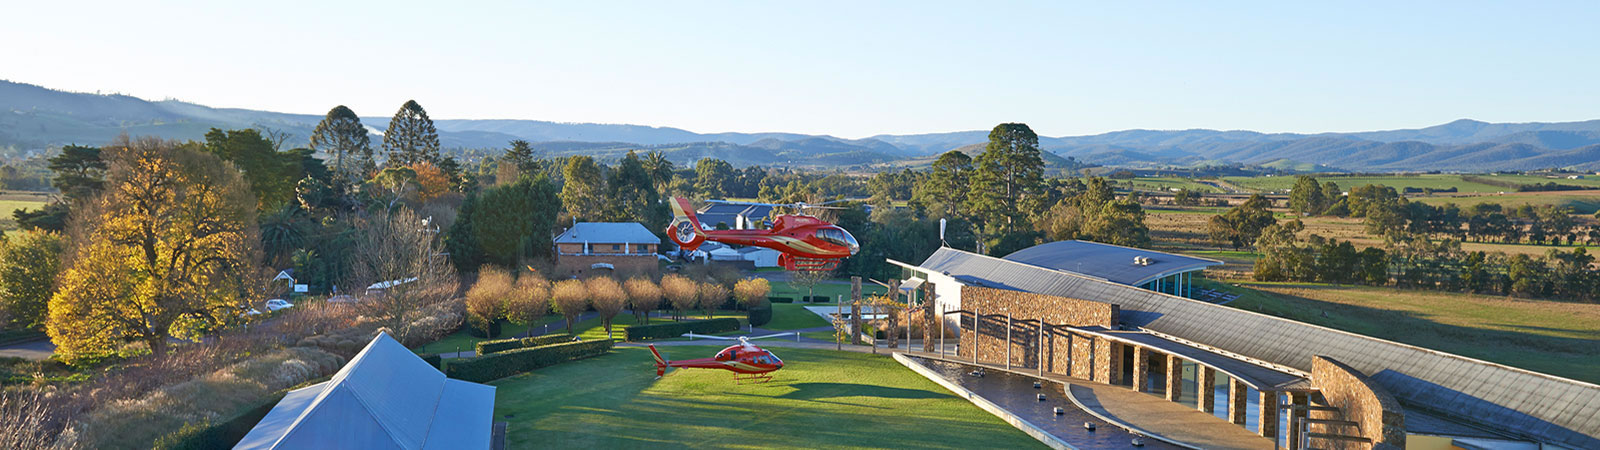 yarra-valley-helicopter-tours